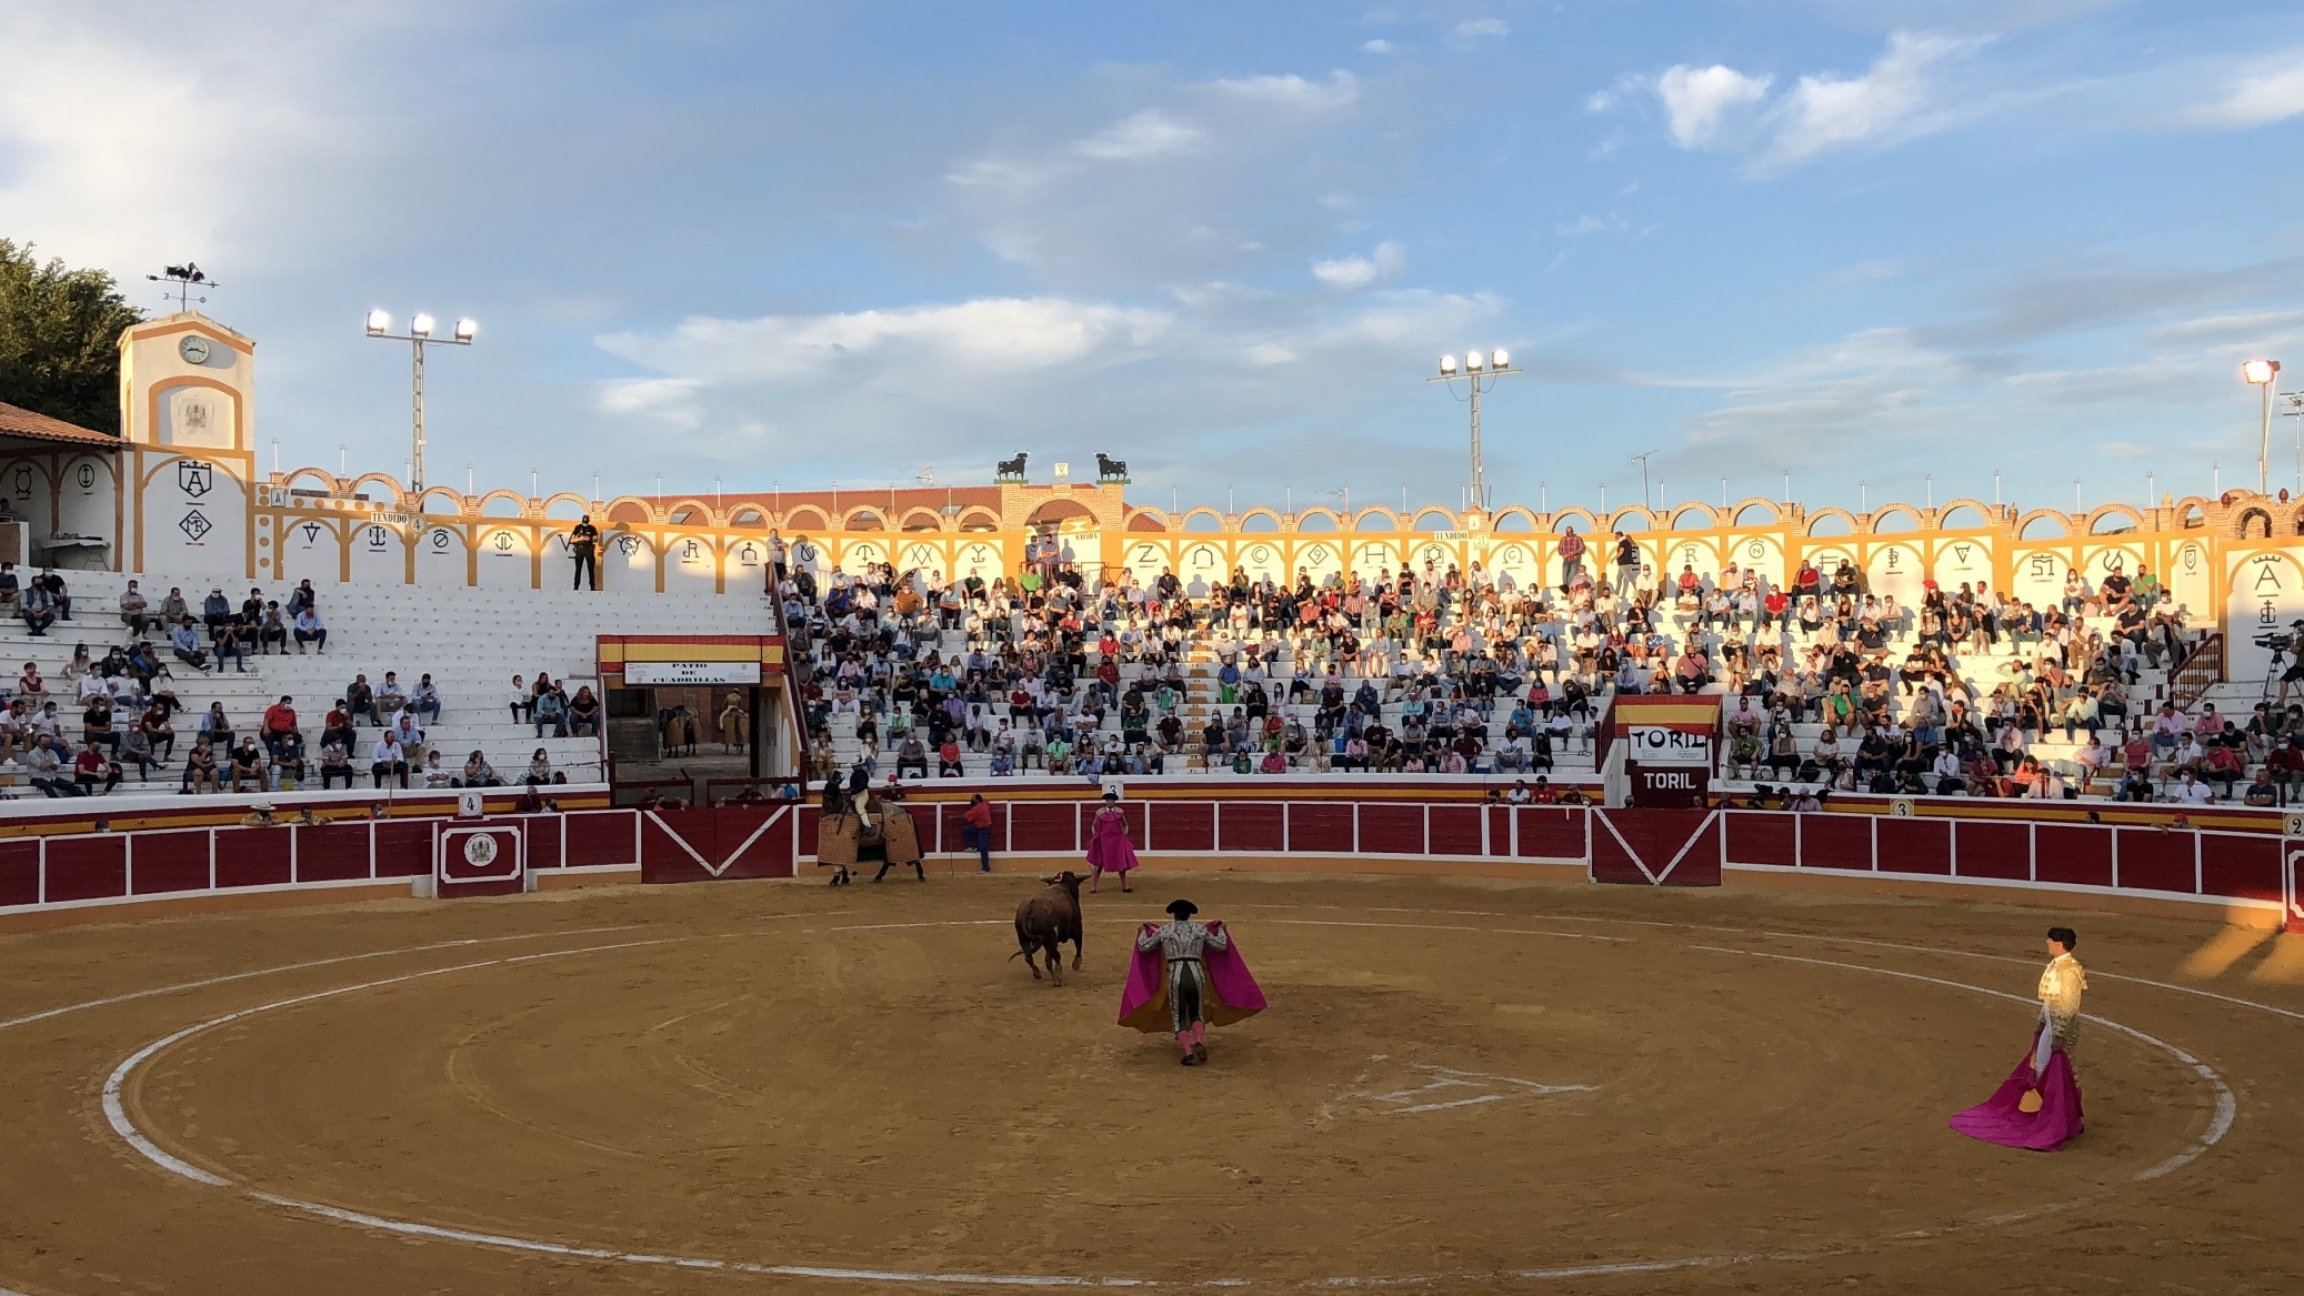 The first stage of the bullfight.